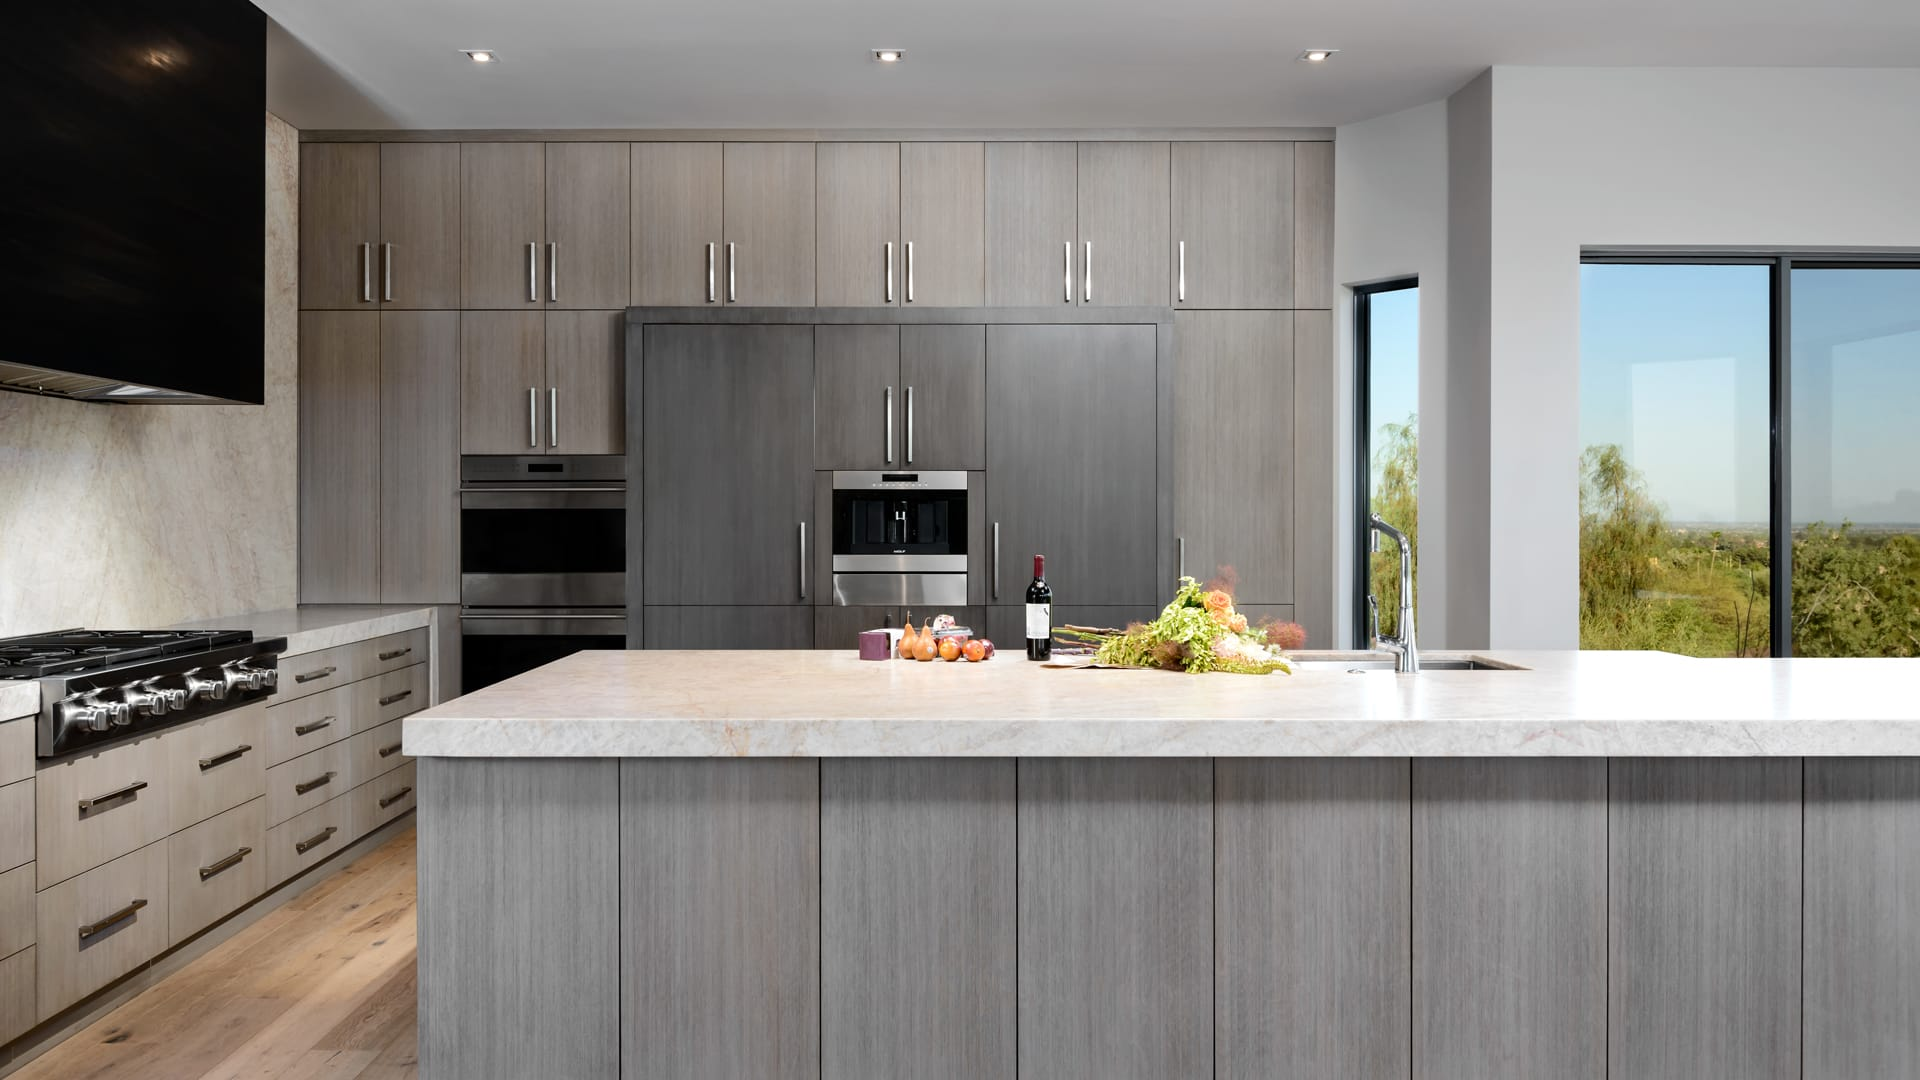 Rejuvenate Your Kitchen With A Complete Remodel - Todays ...